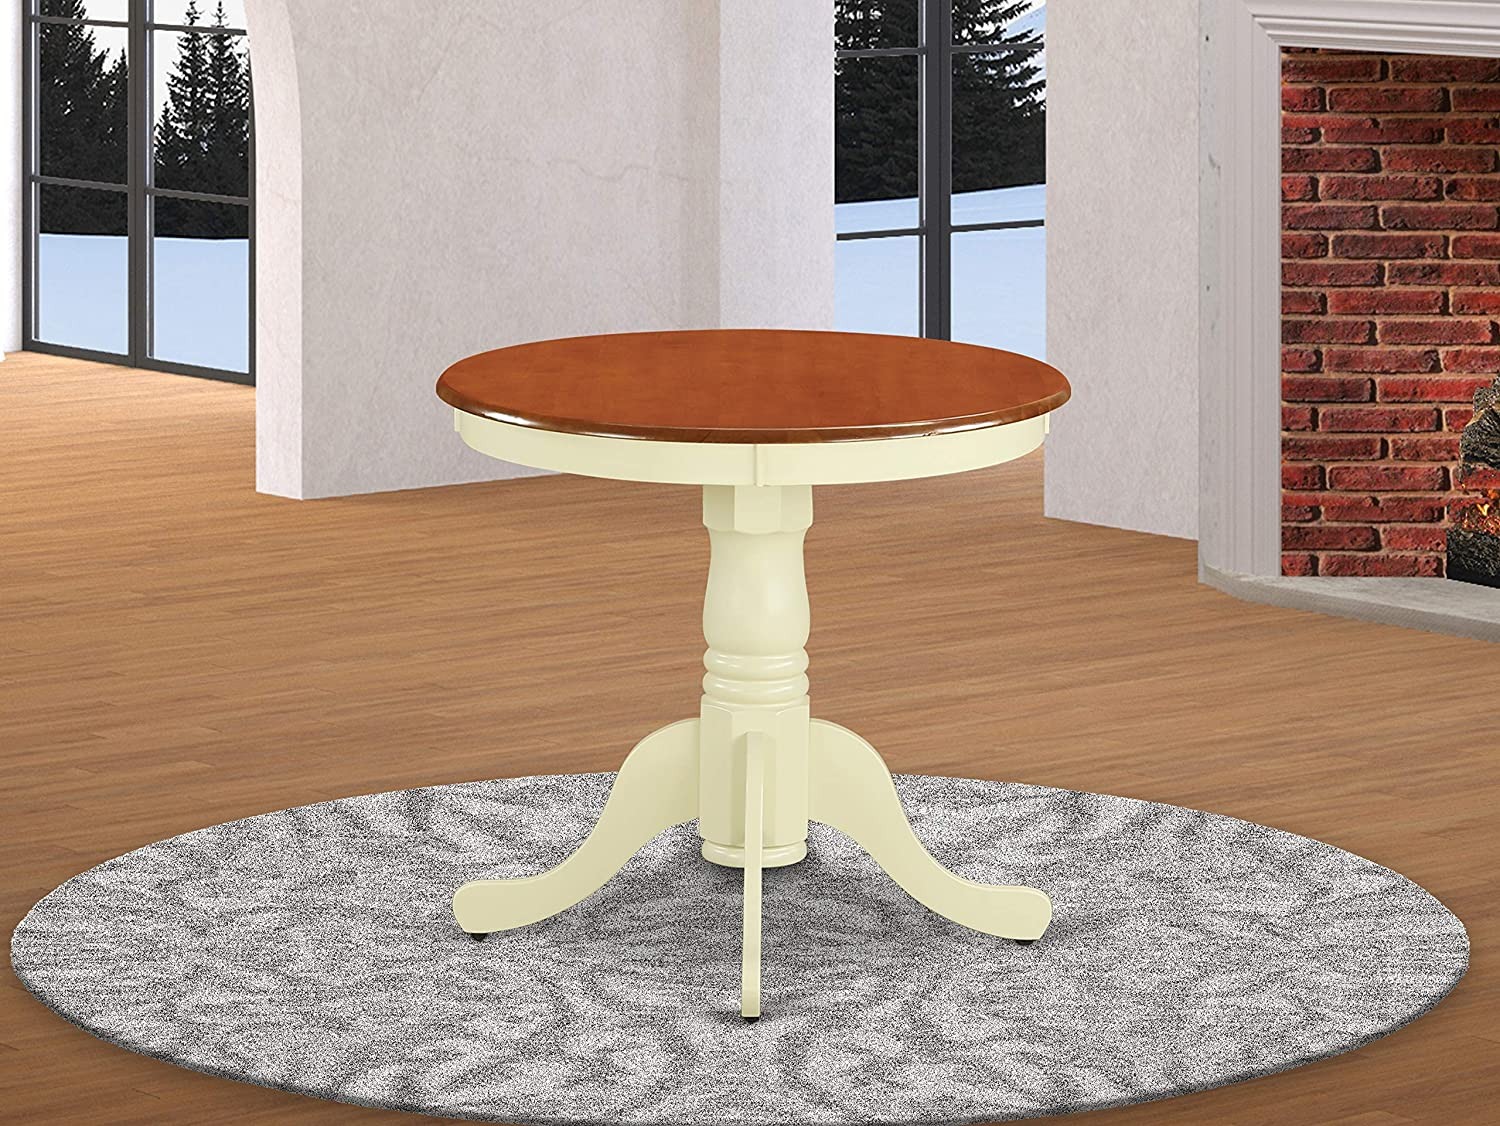 East West Furniture Edan kitchen table - Cherry Table Top and Buttermilk Finish legs Hardwood Frame Round Kitchen Table